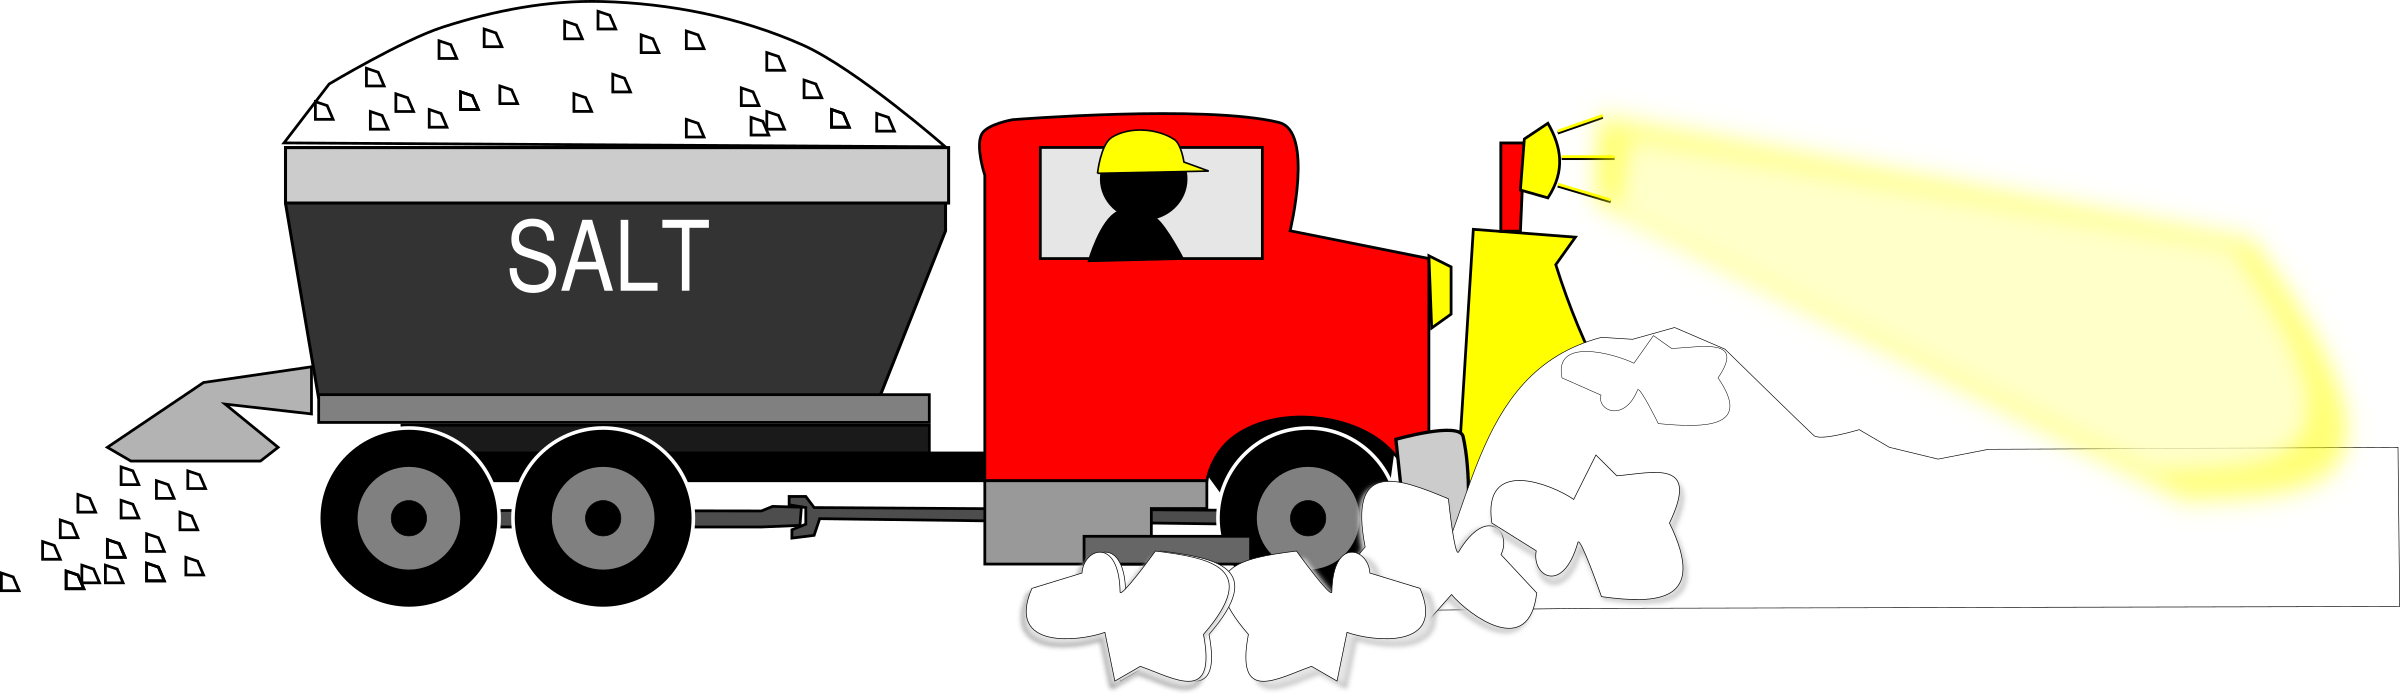 Free plowing cliparts download. Plow clipart snow shovel jpg library download